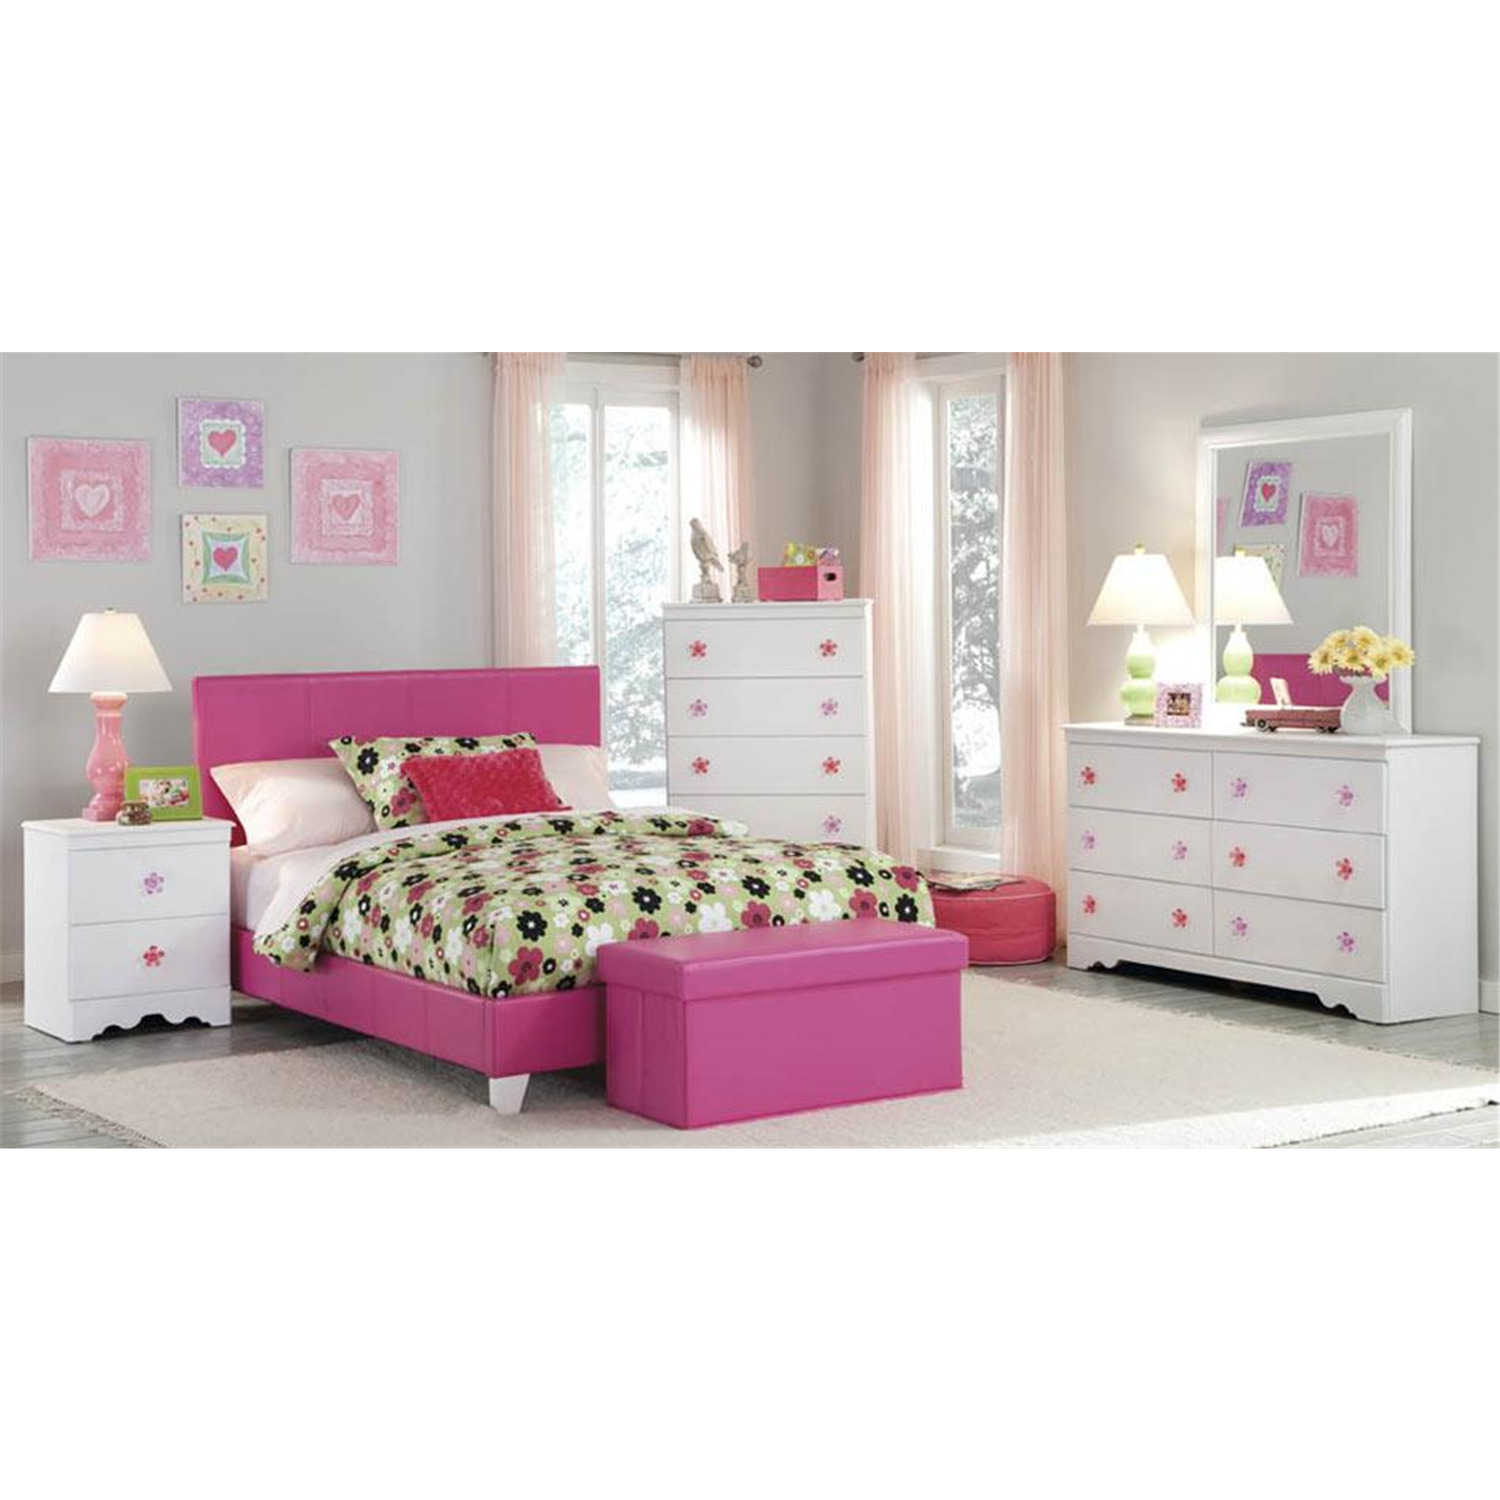 Savannah bedroom set pink ojcommerce American home furniture bed frames